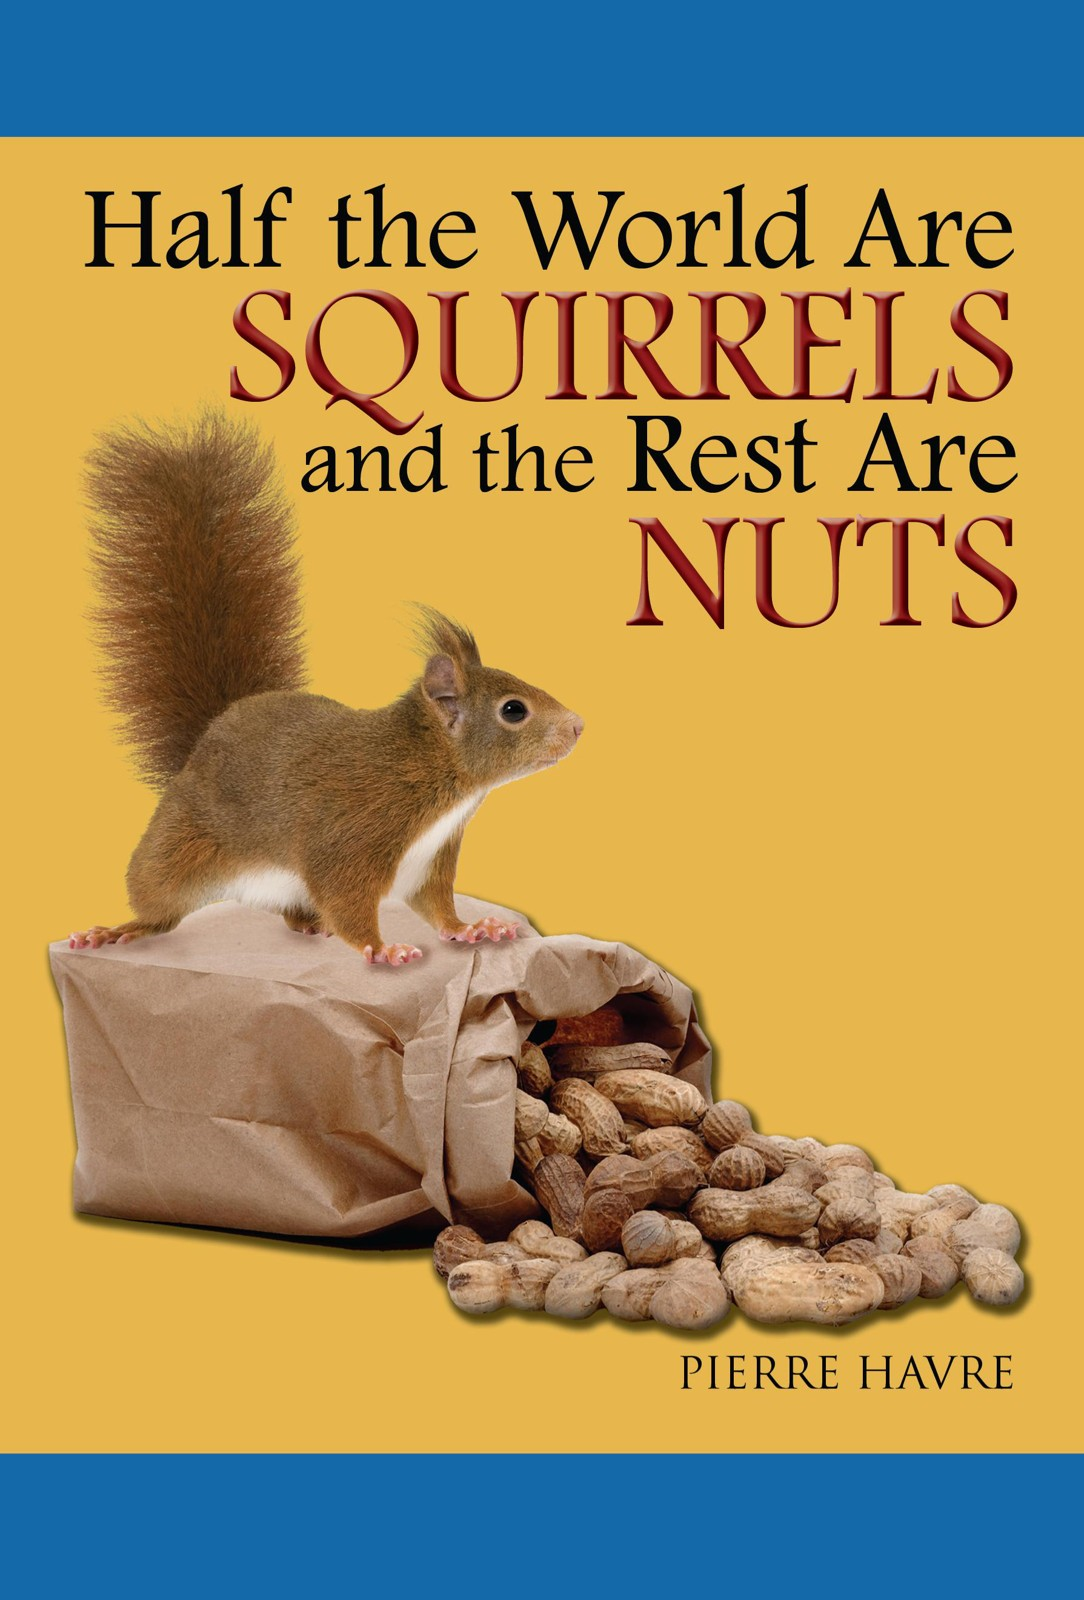 Half The World are Squirrels and the Rest are Nuts By: Pierre Havre